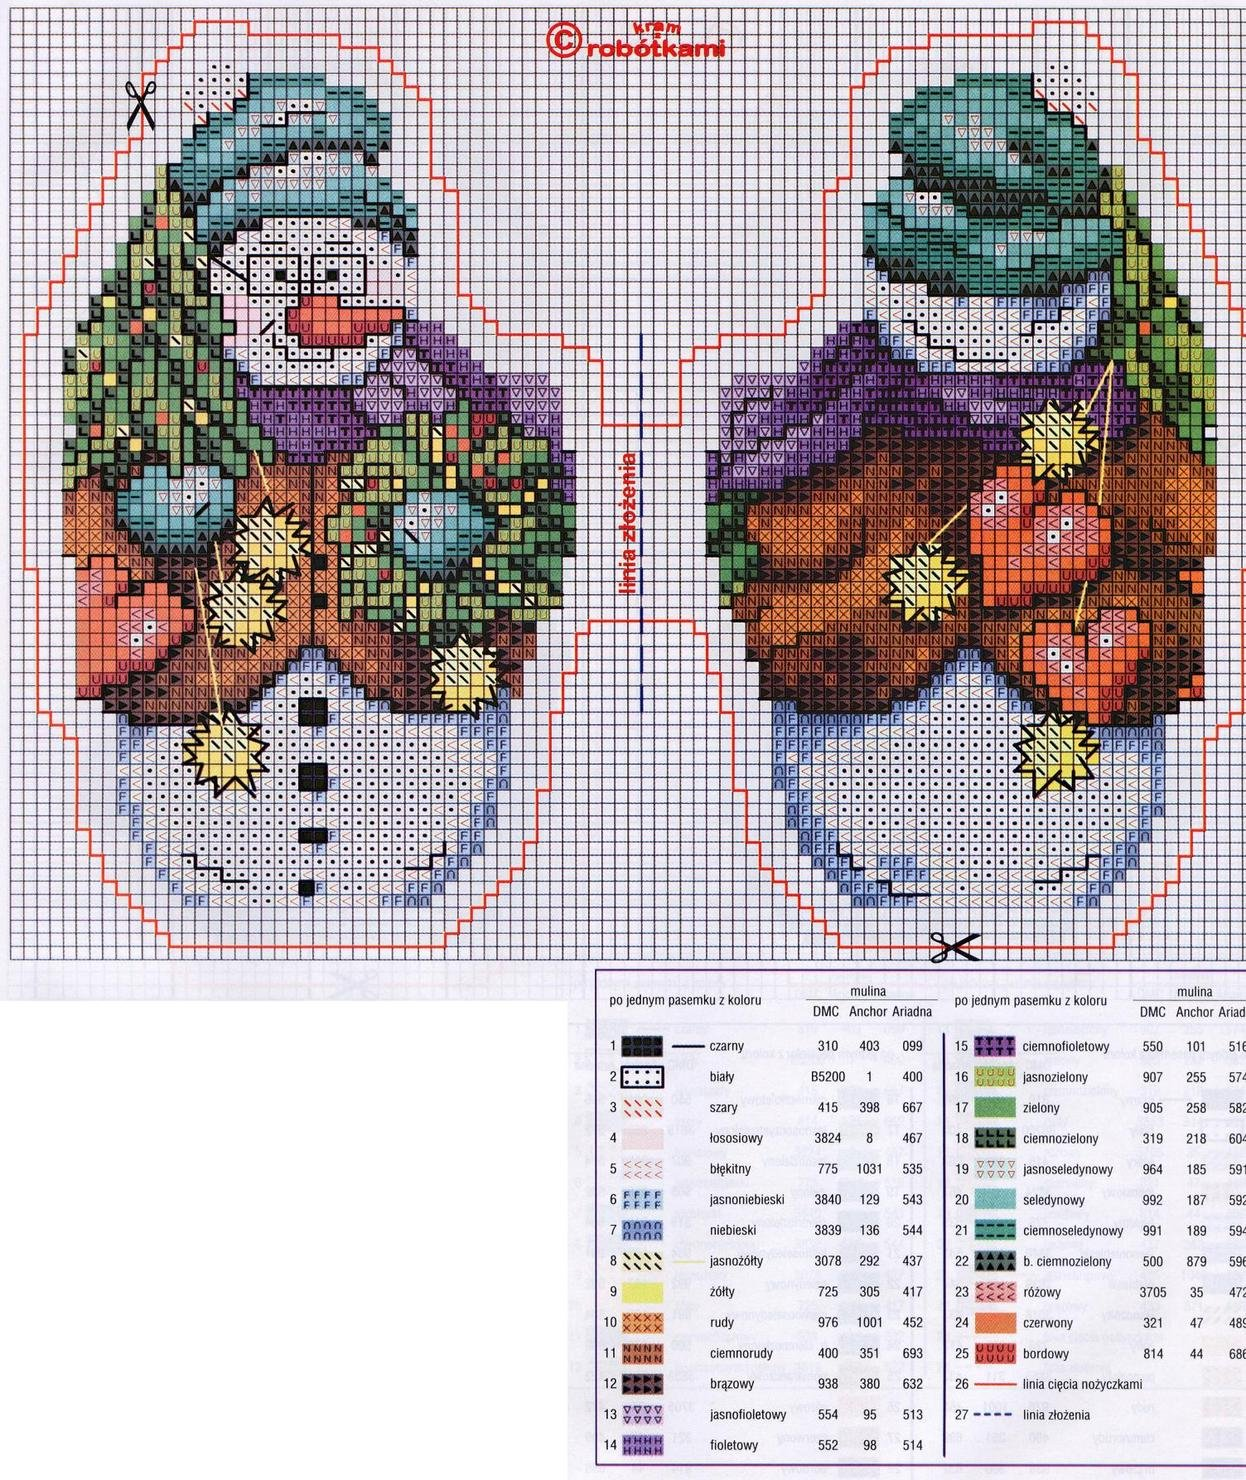 http://make-handmade.com/wp-content/uploads/2011/12/christmas-tree-ornament-crafts-snowman-cross-stitch-kits-make-handmade-24e994c2023cf.jpg